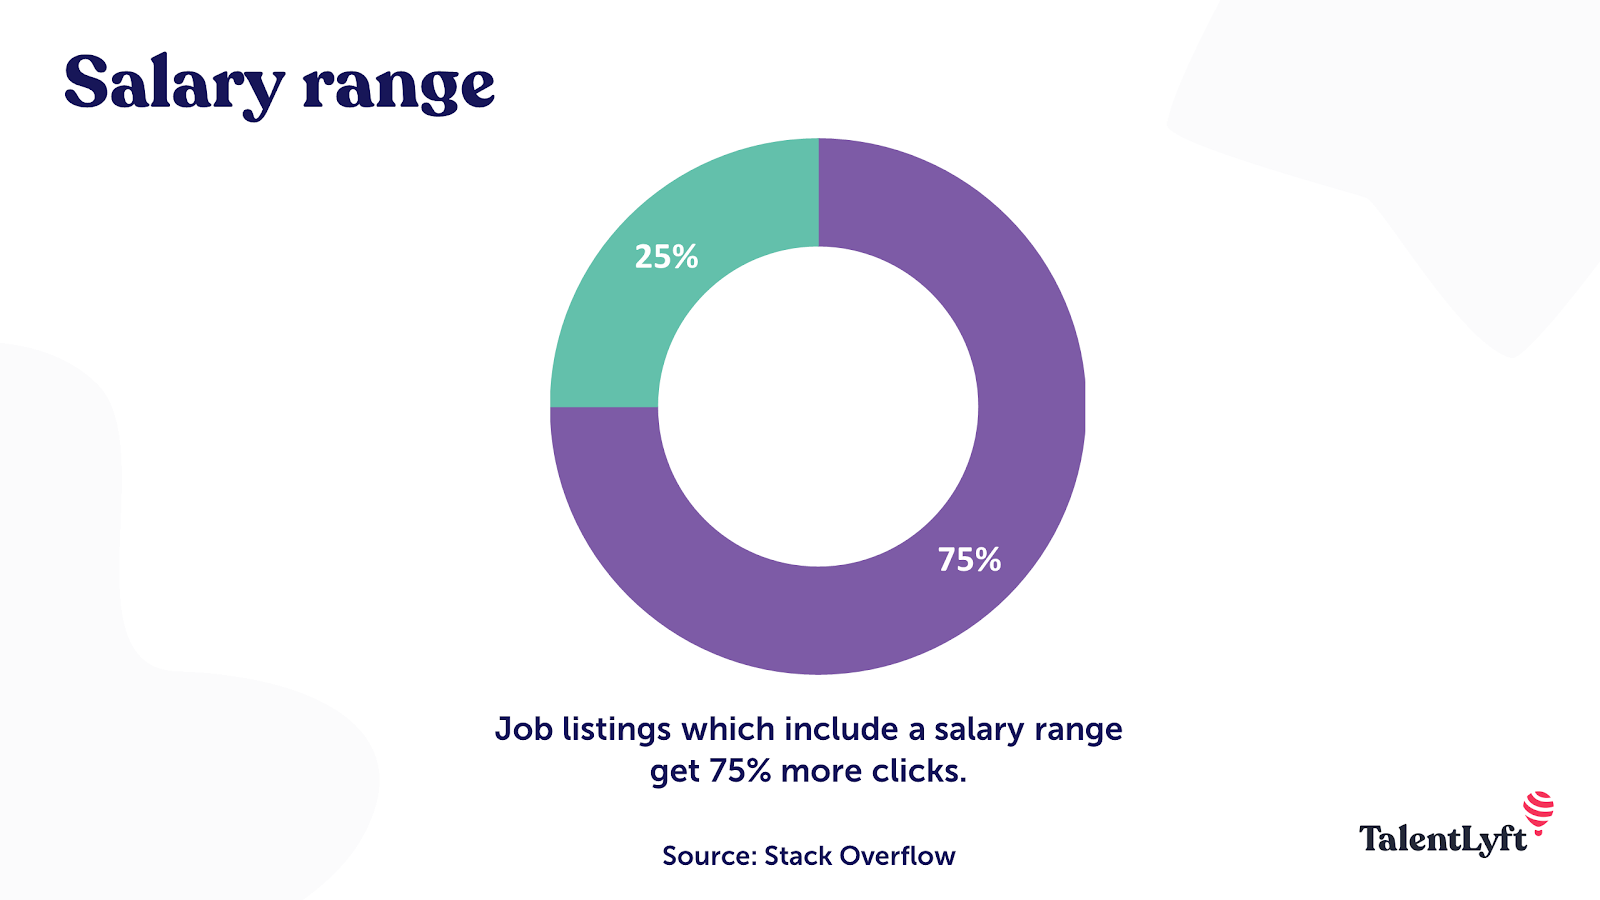 Salary range in job advertisements